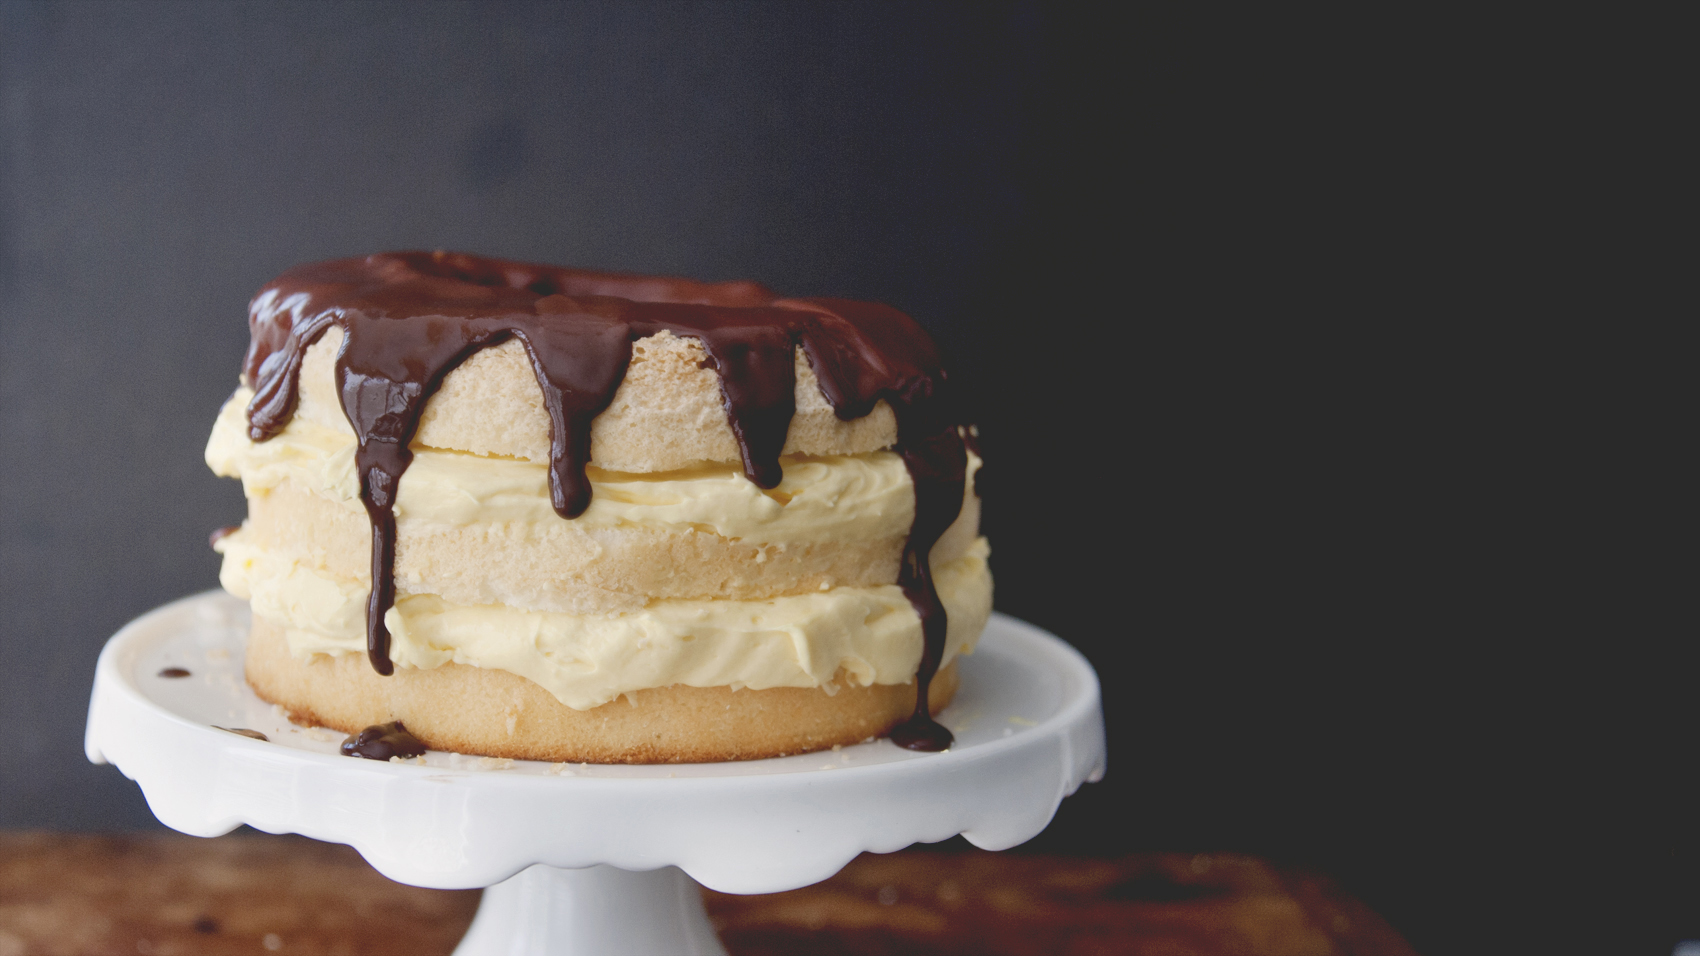 Easy Easter Desserts Easy Layered Boston cream Pie // The Kitchy Kitchen + Jell-O